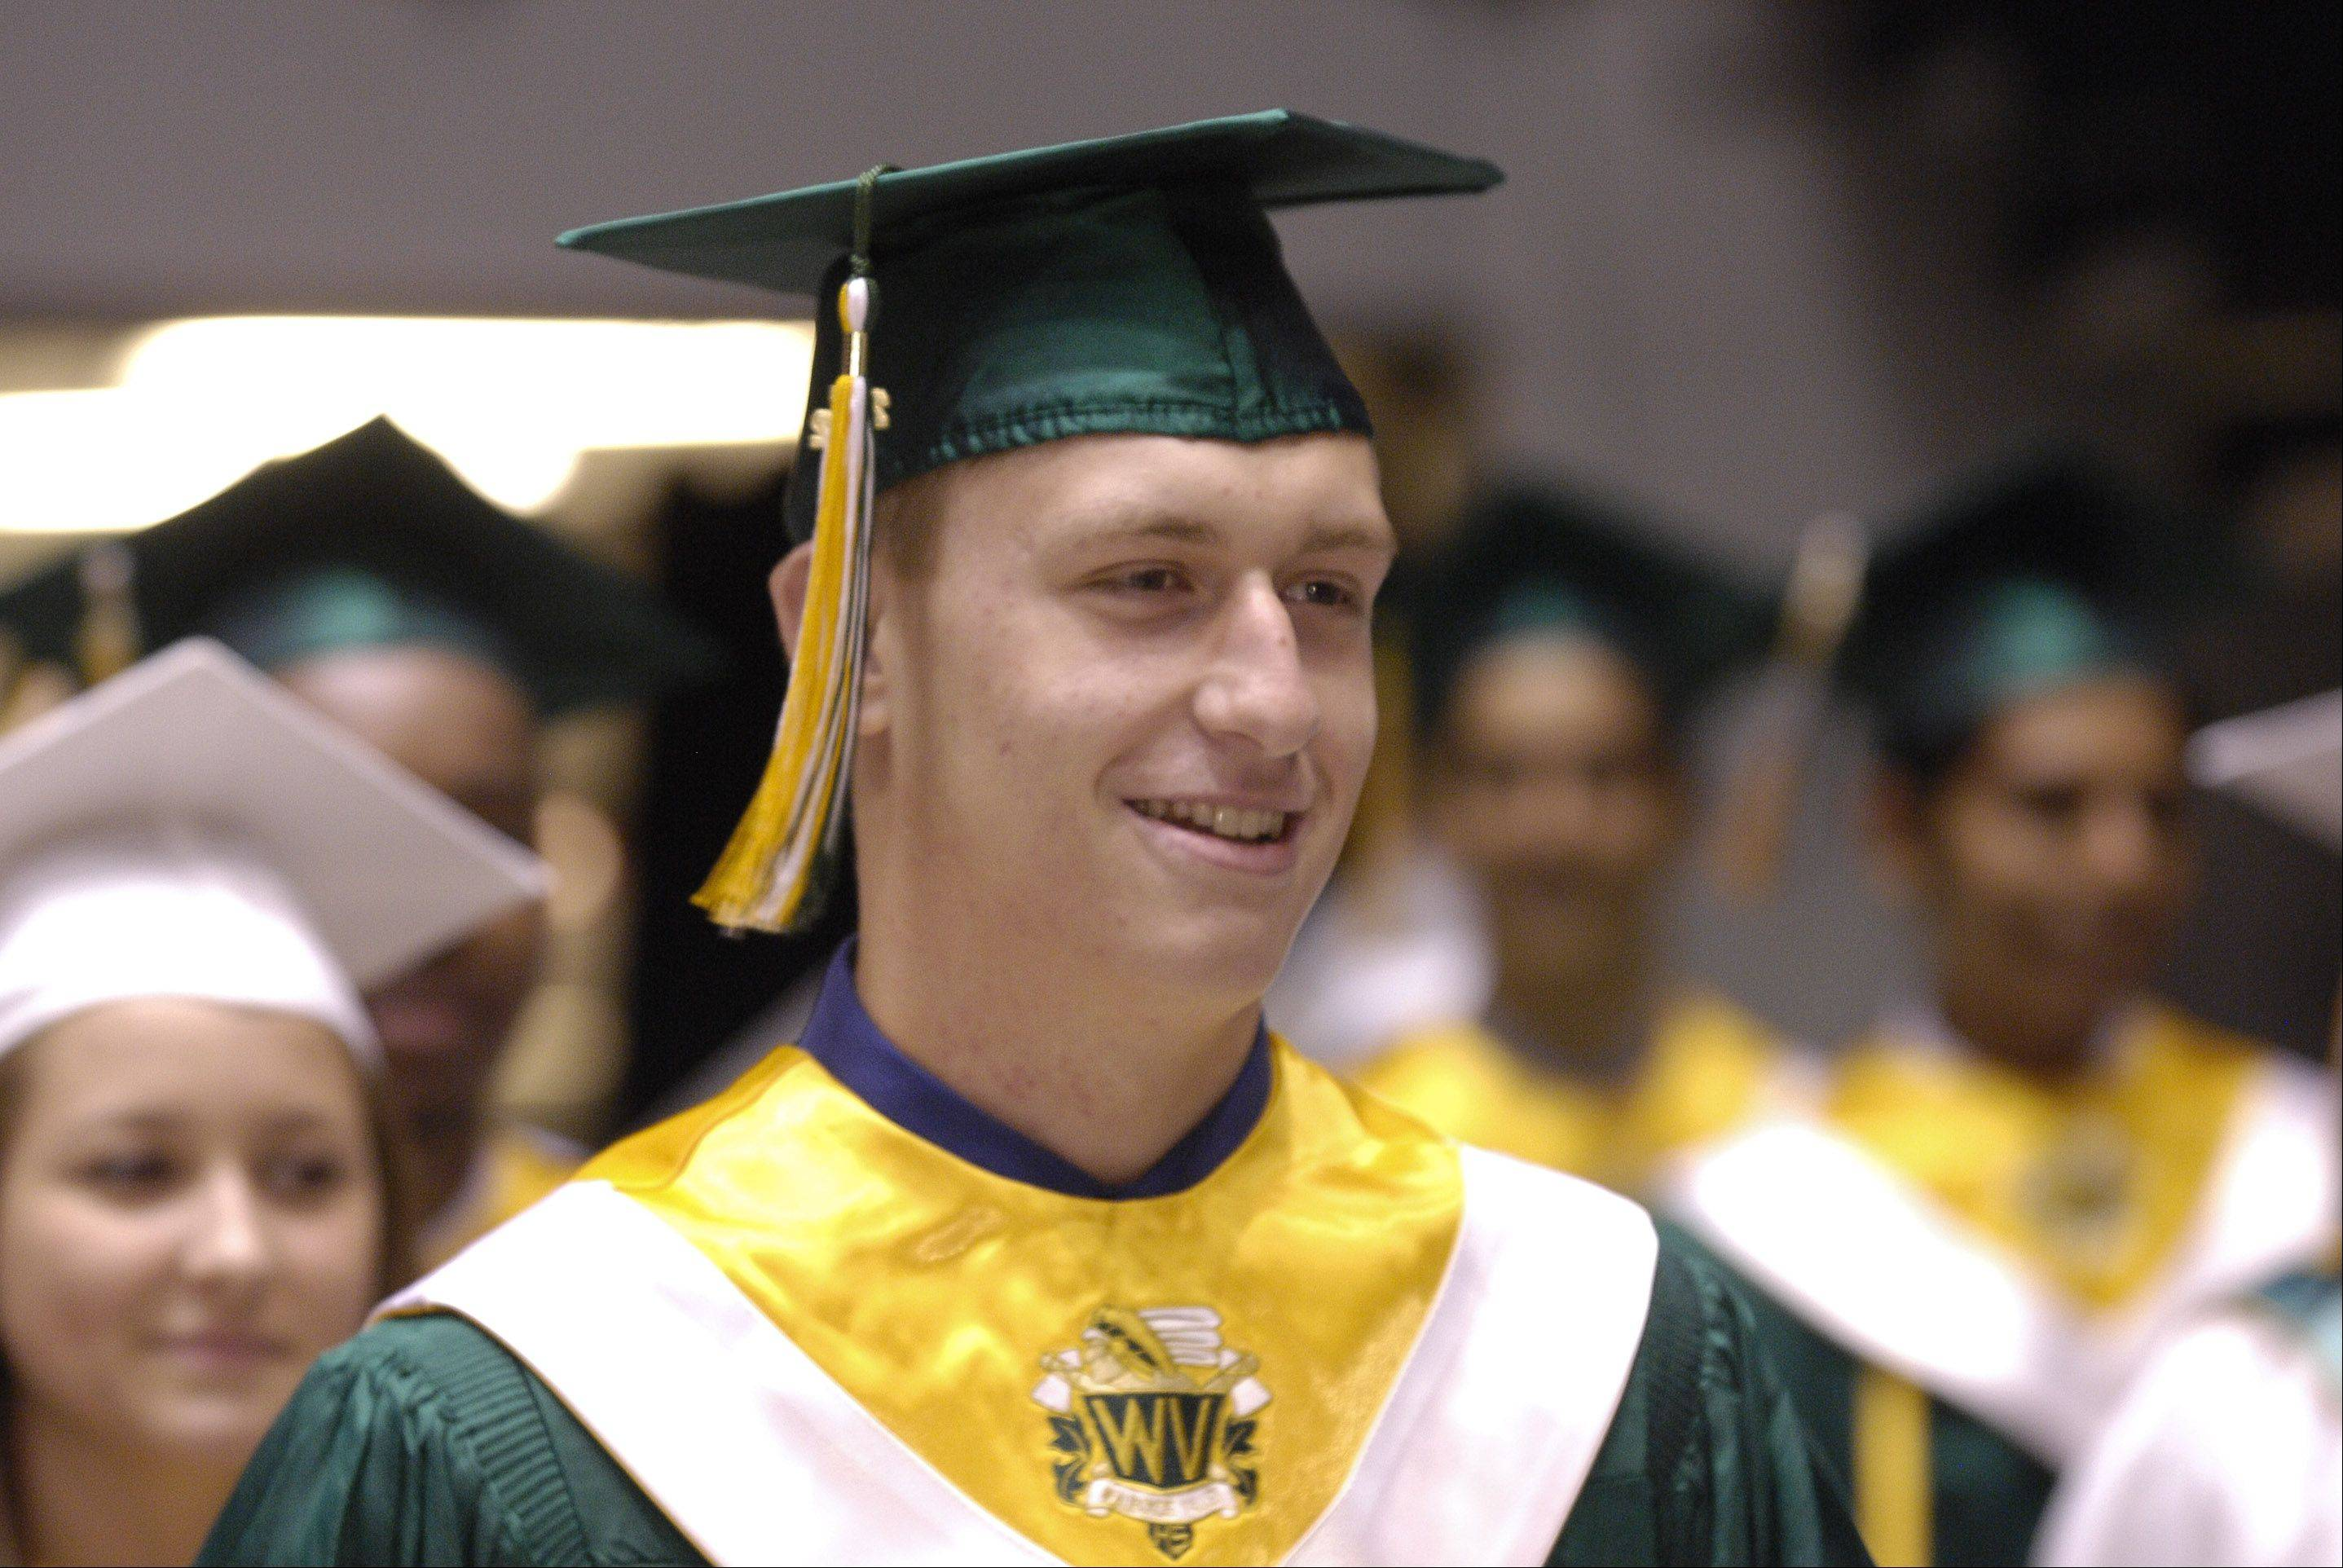 Waubonsie Valley High School held its graduation ceremony Sunday in DeKalb at the NIU Convocation Center.